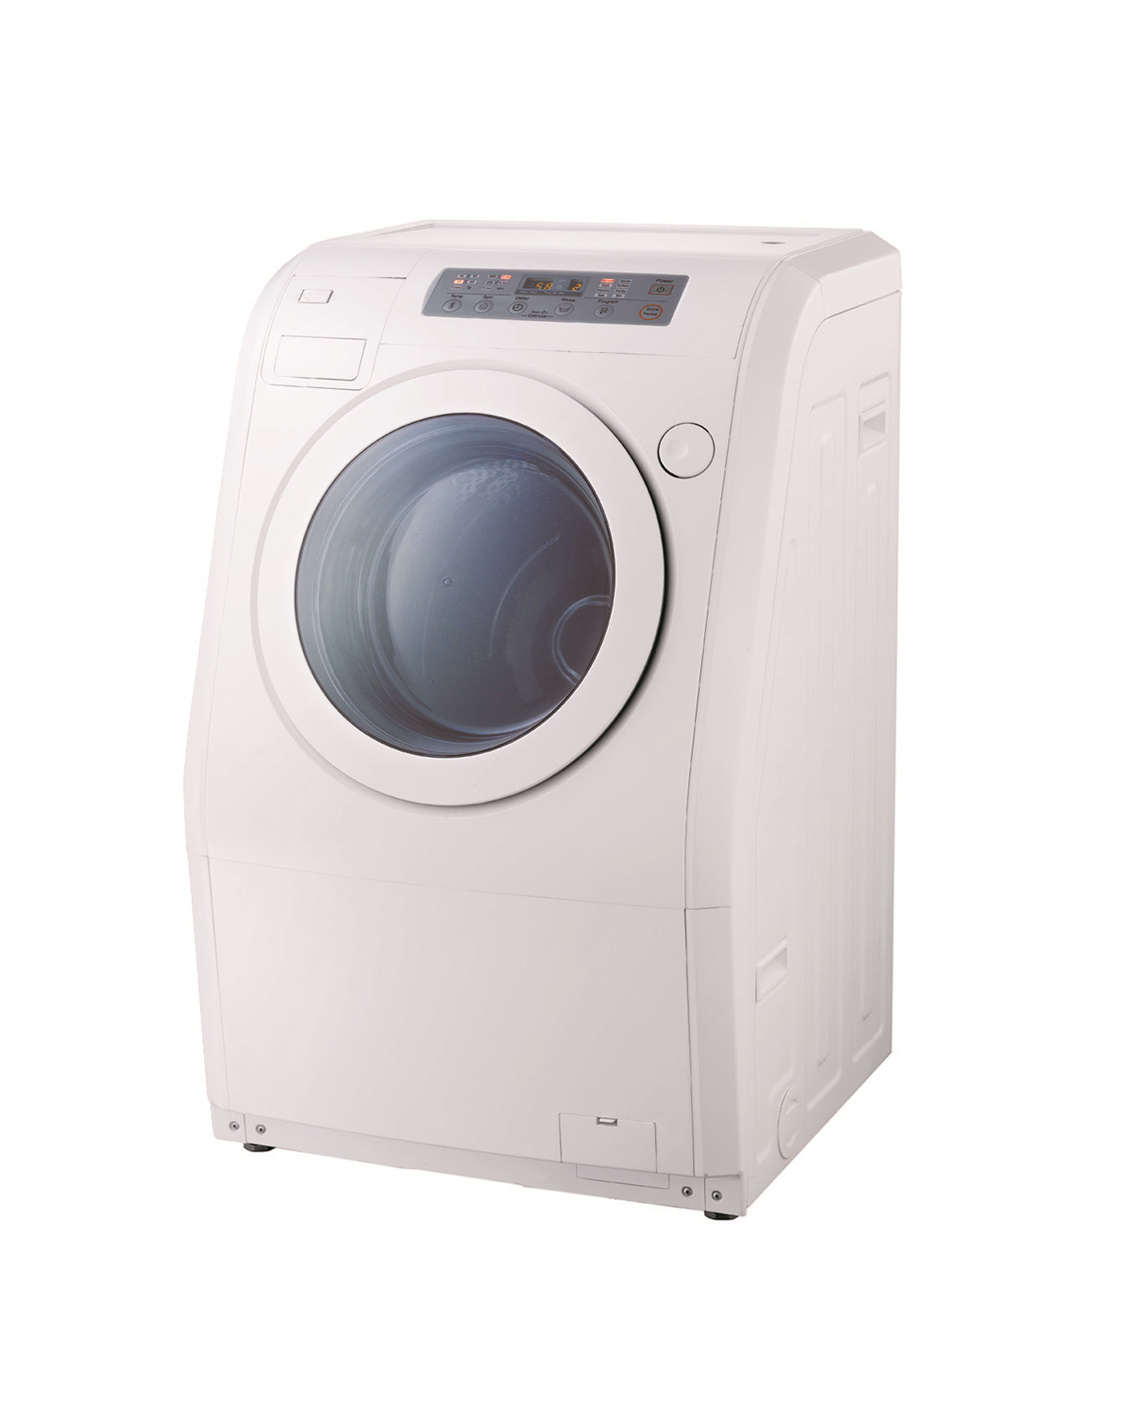 what is the drum on a washing machine